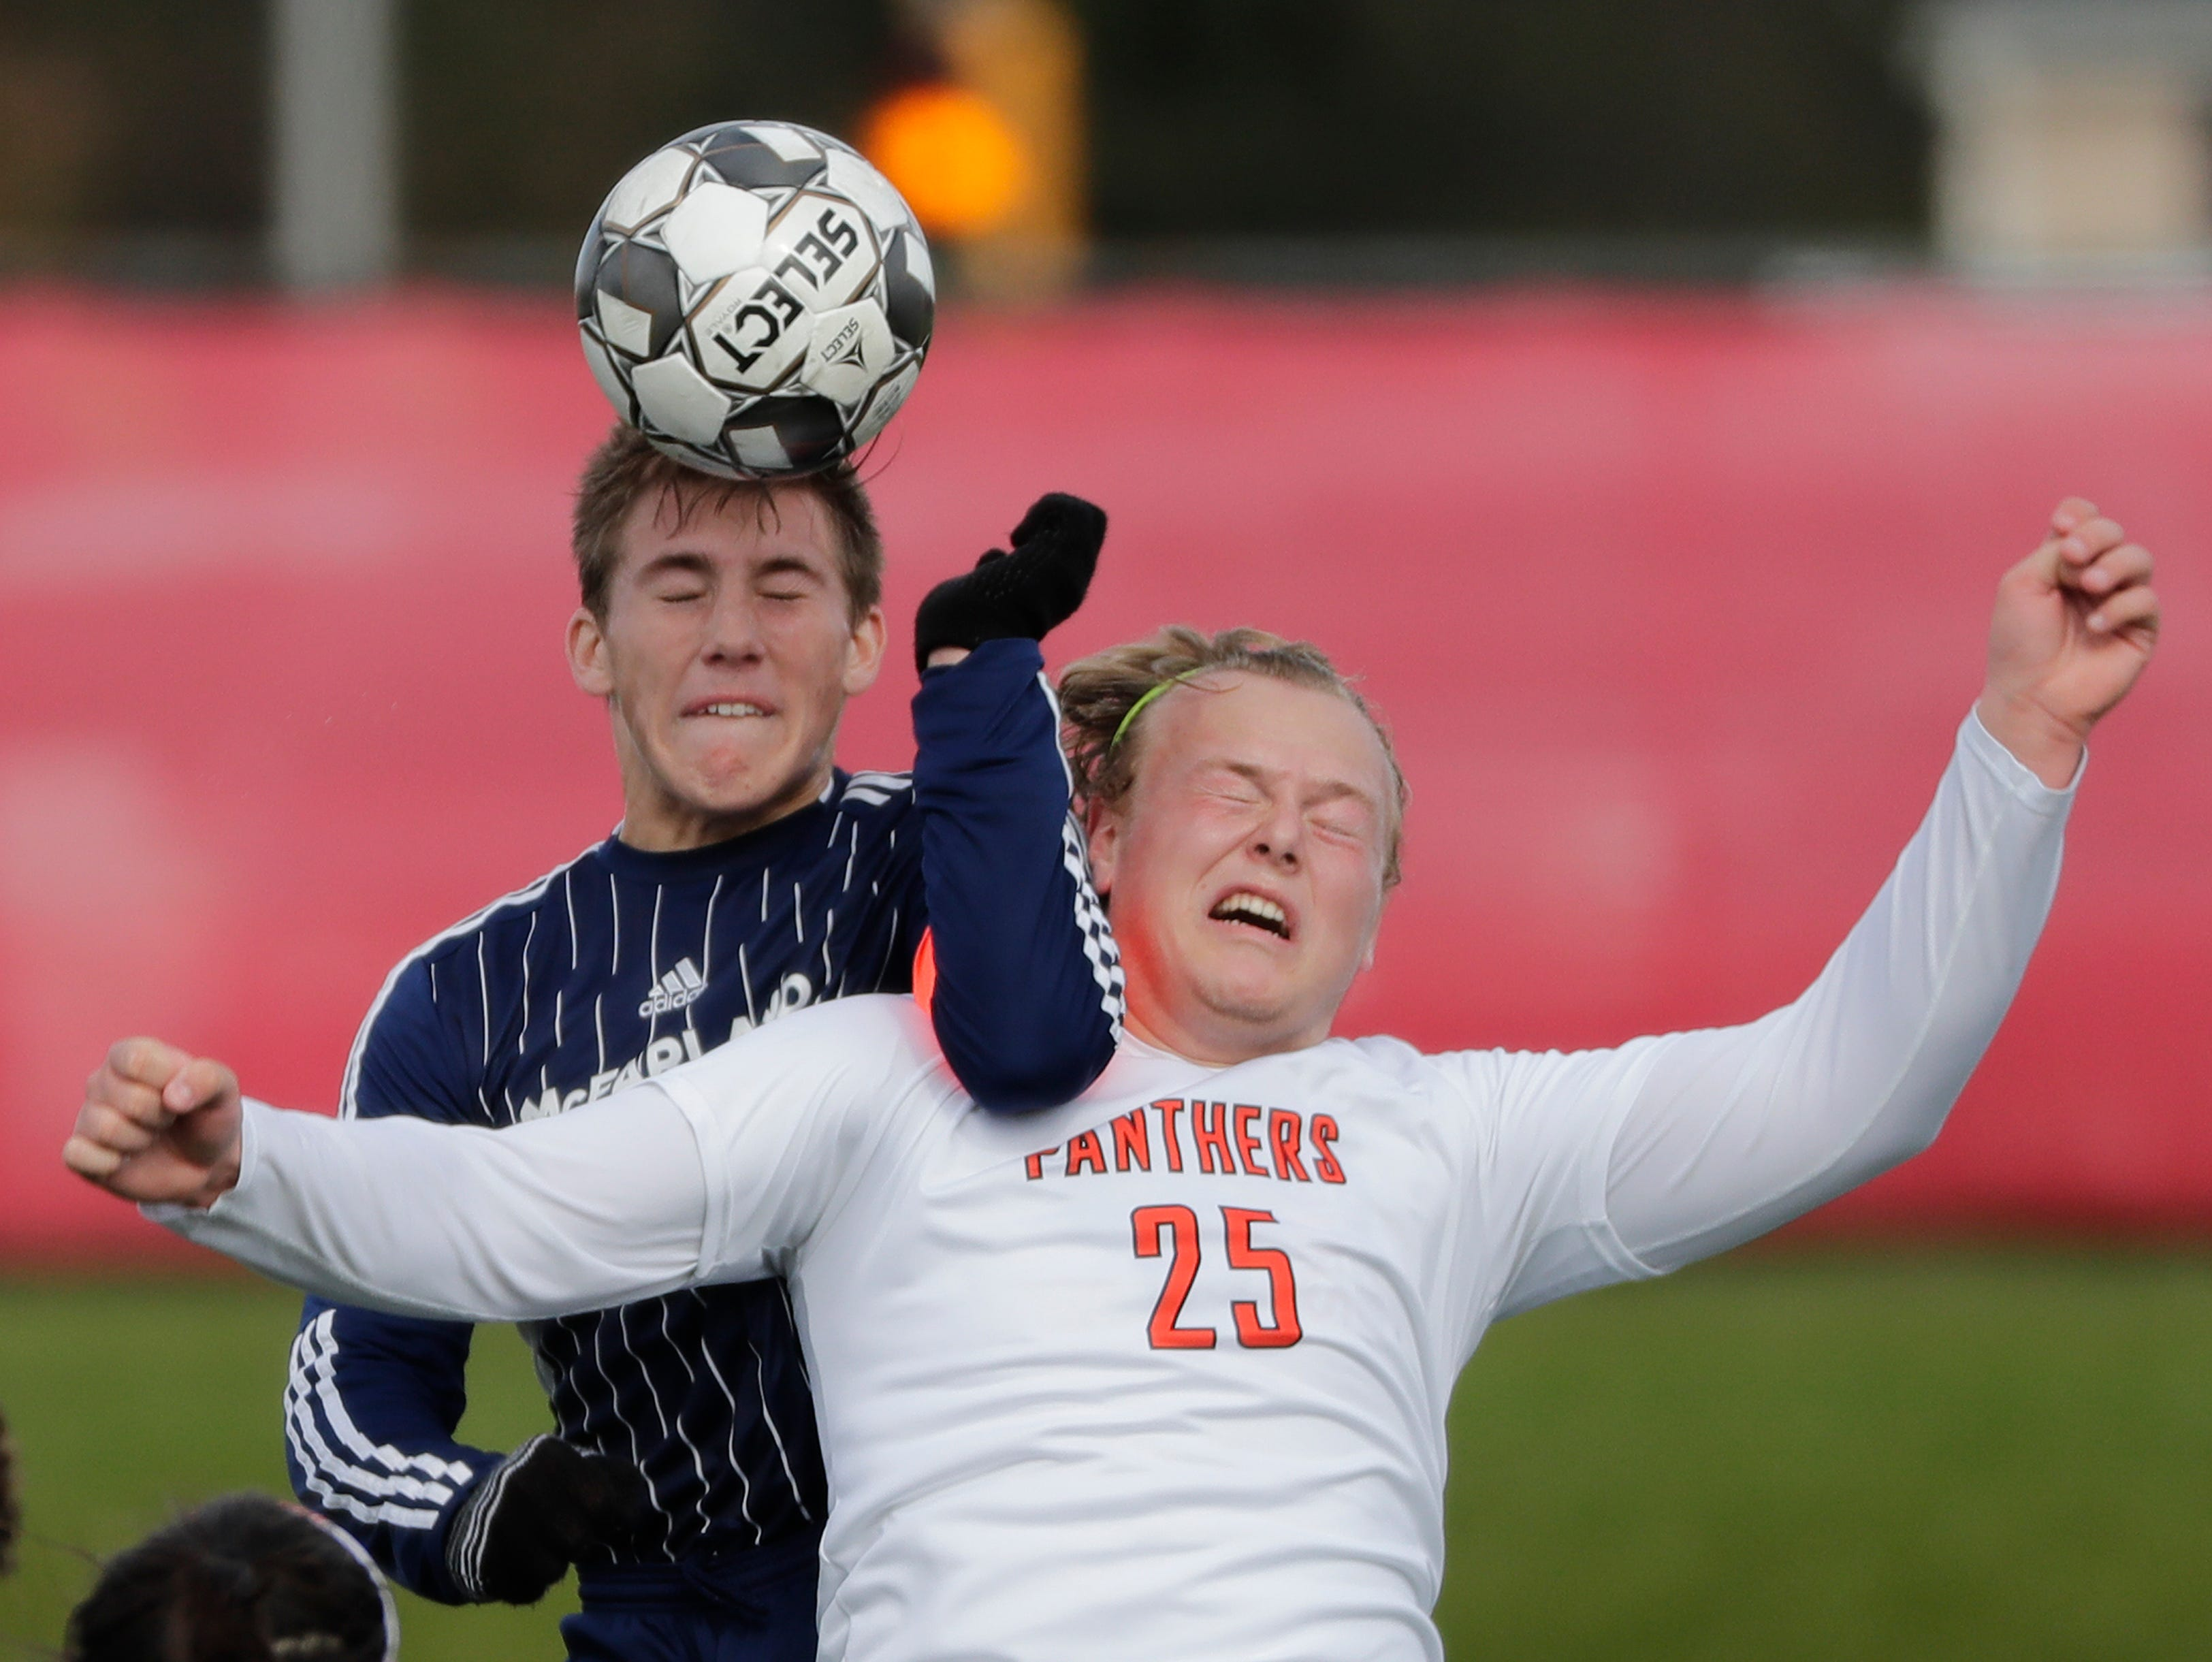 Plymouth High School's Joel Williams (25) defends against McFarland High School's Caleb Blair (10) during their WIAA Division 3 state semifinal boys soccer game Thursday, November 1, 2018, at Uihlein Soccer Park in Milwaukee, Wis. 